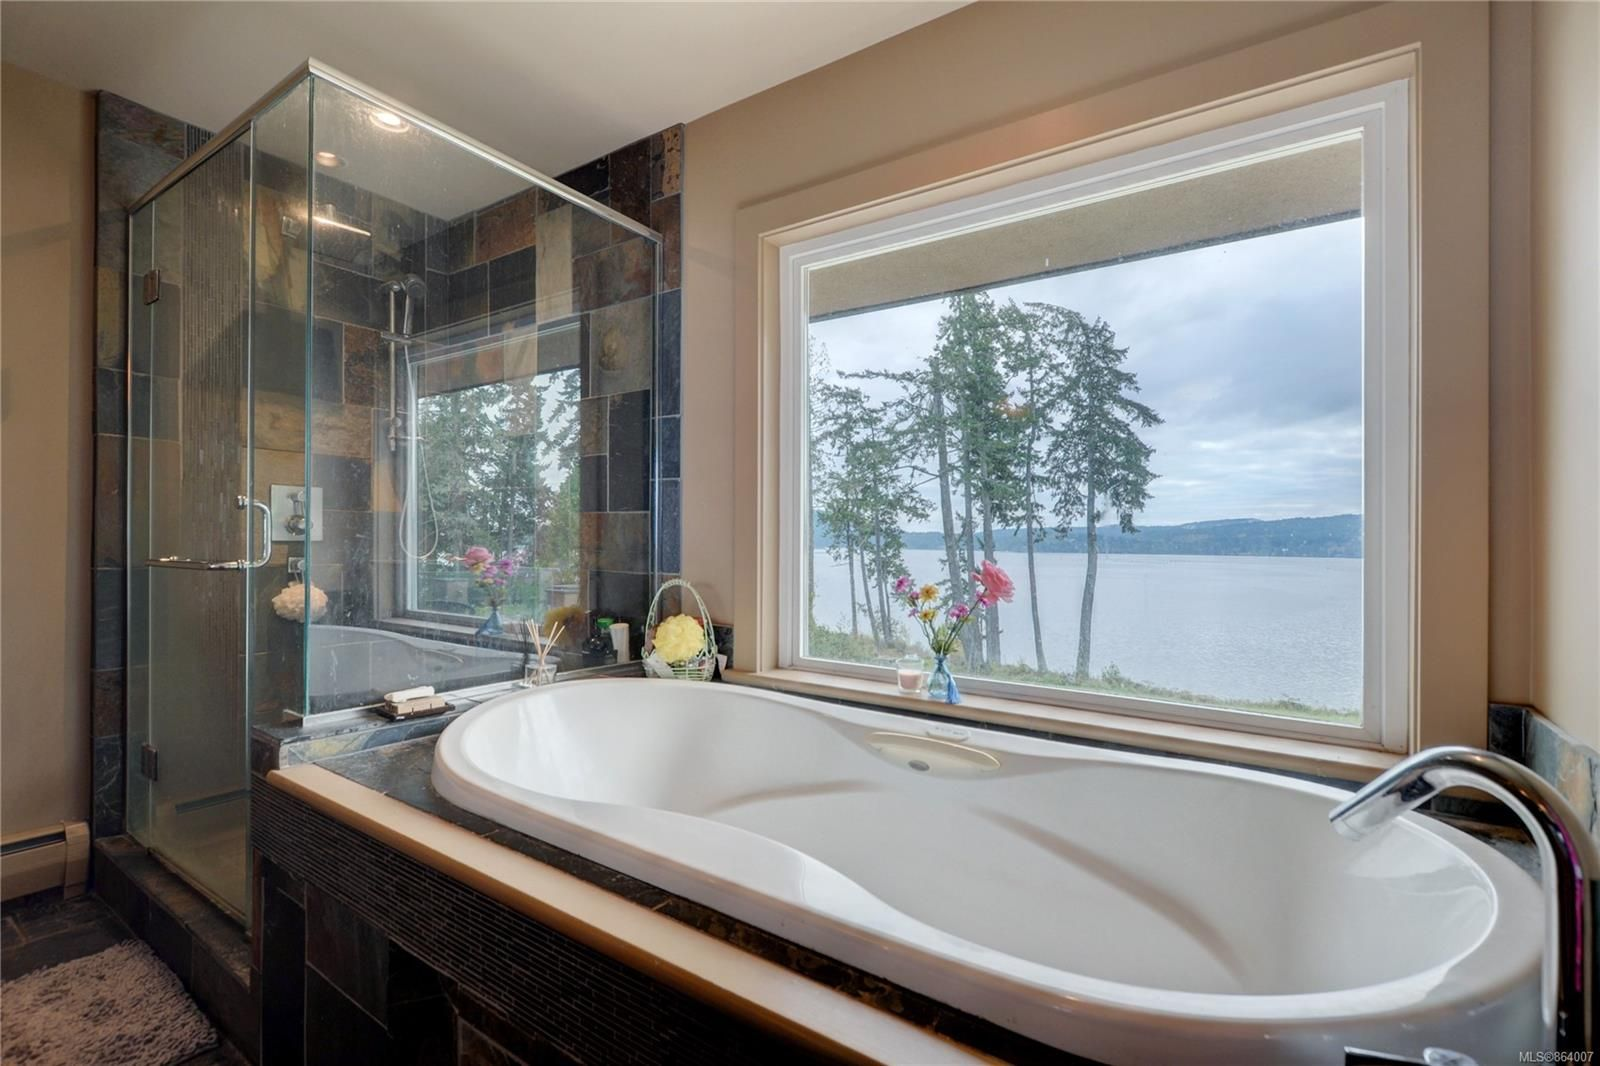 Photo 16: Photos: 5697 Sooke Rd in : Sk Saseenos House for sale (Sooke)  : MLS®# 864007